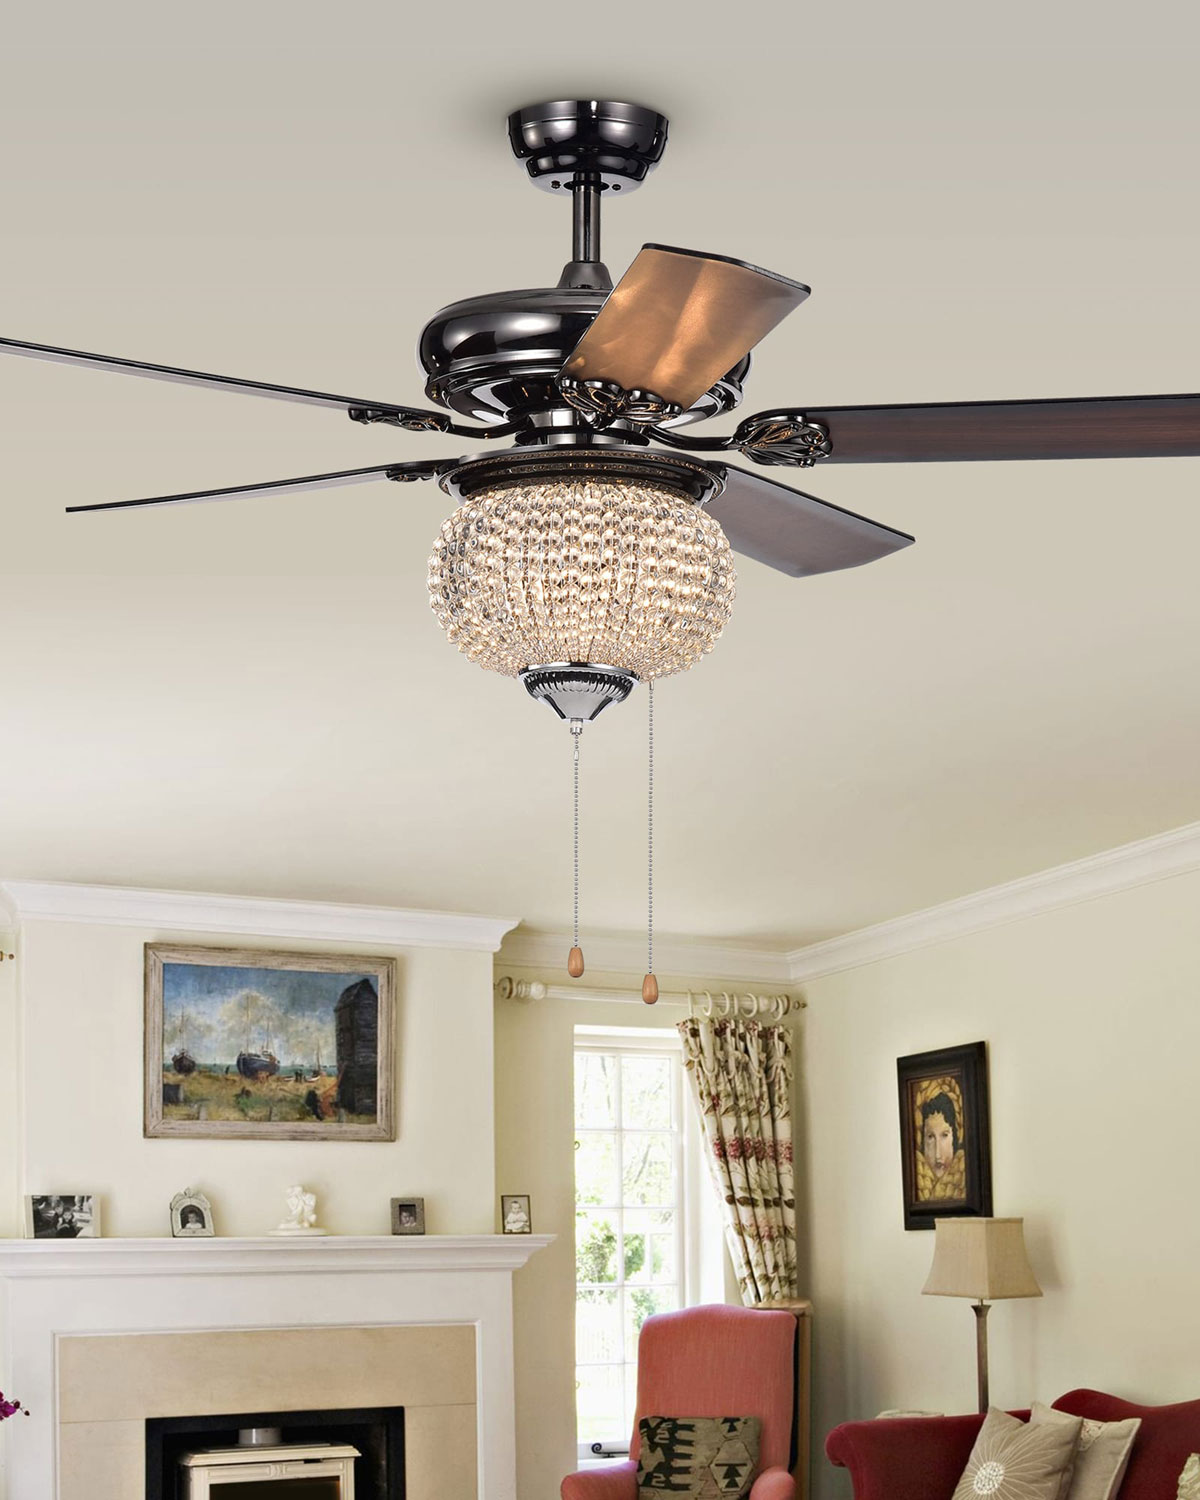 Home Accessories Priteen Ii Crystal Bowl Chandelier Ceiling Fan